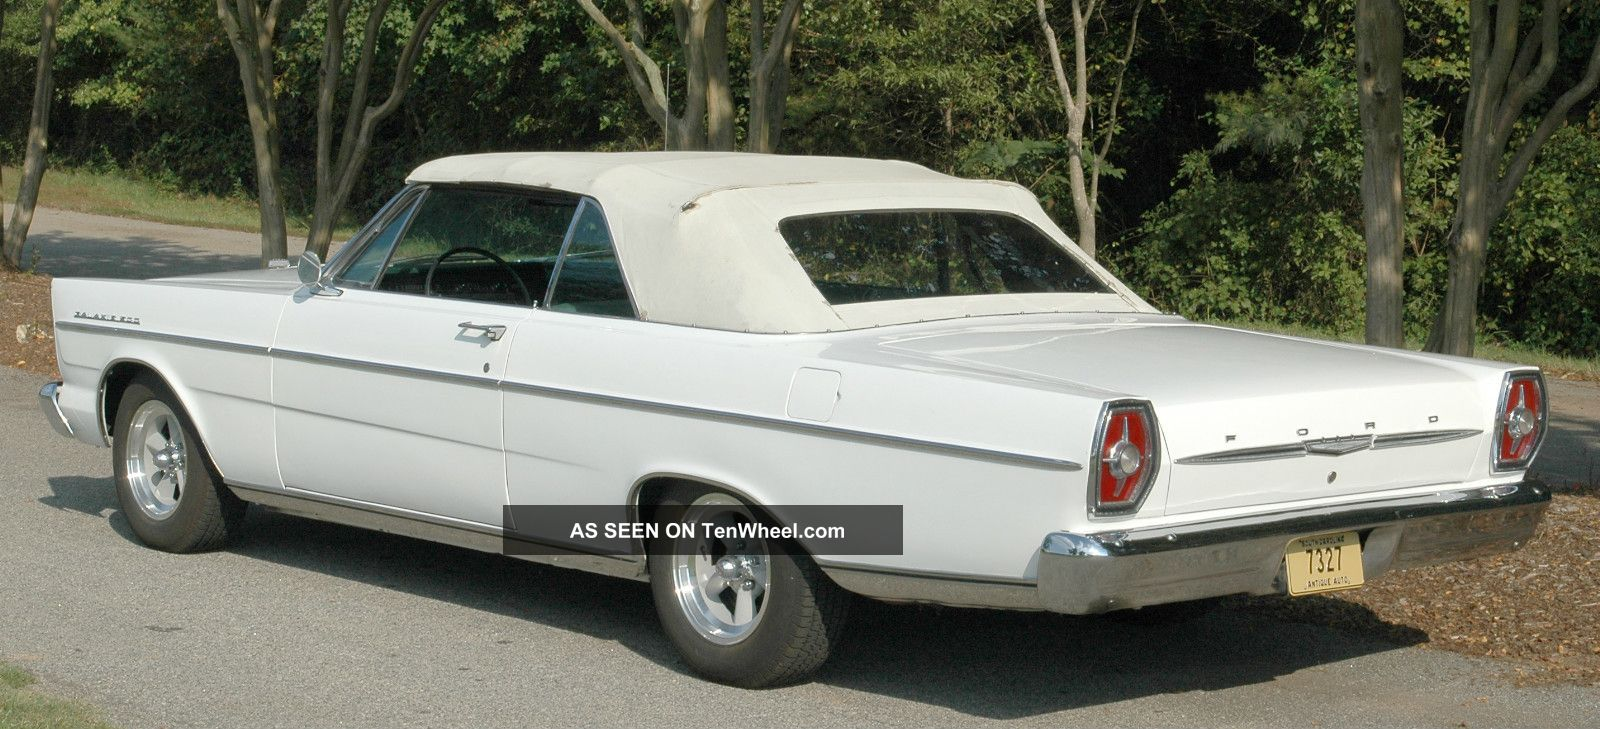 1965 ford galaxie shop manual repair manual ford galaxy ford galaxy workshop manual download